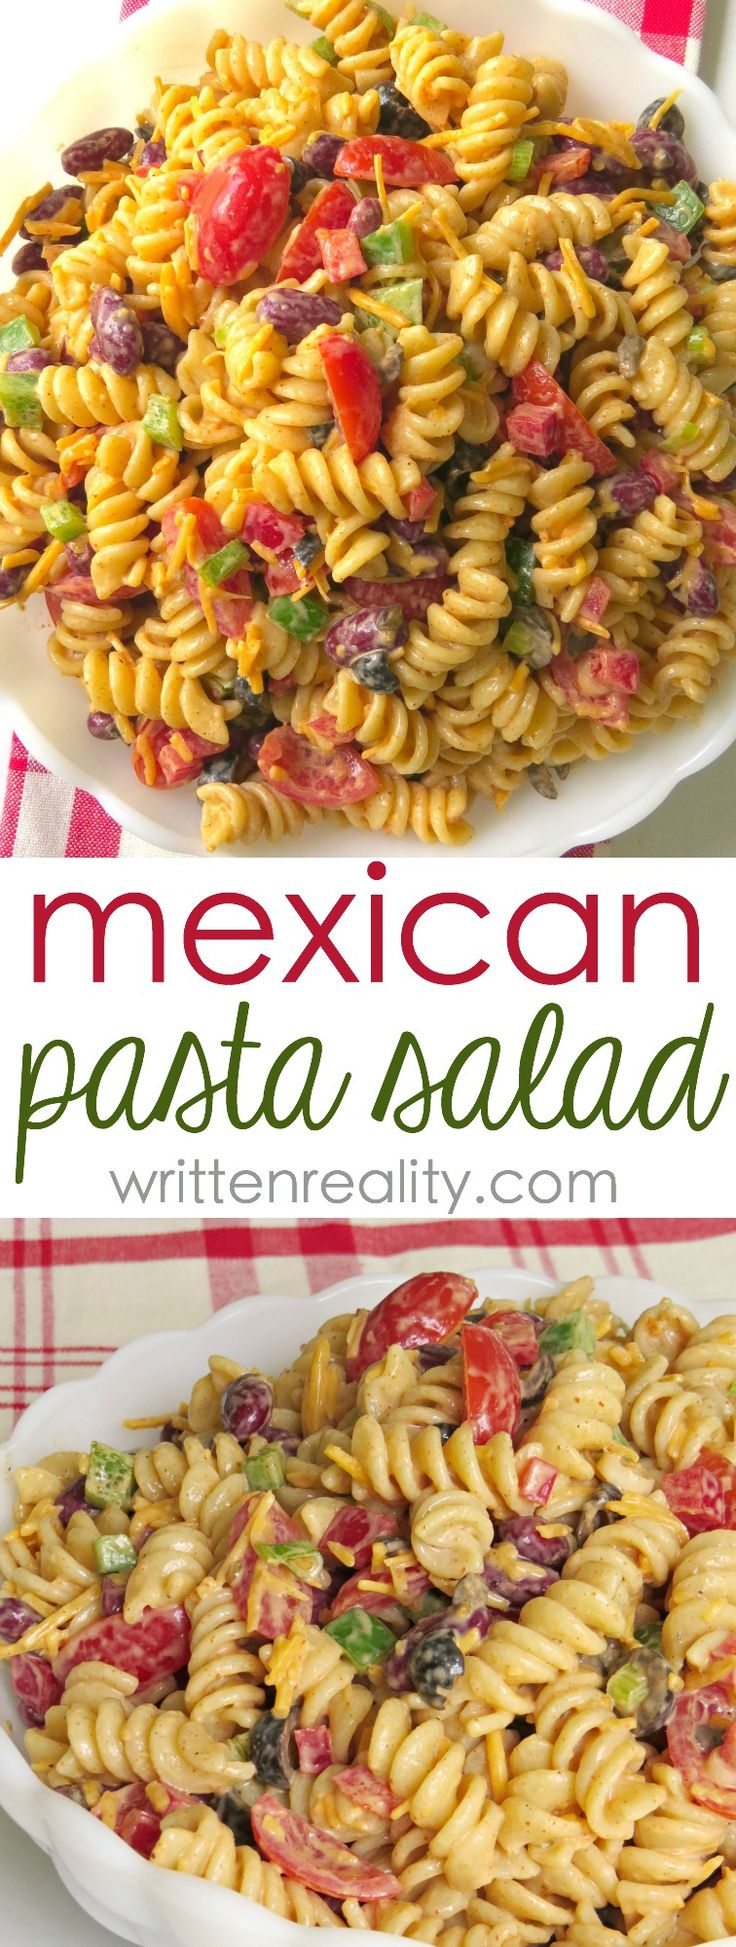 Easy Mexican Pasta Salad : You'll love this quick and easy taco pasta salad recipe. It's easy to toss together and serve on busy weeknights. A potluck favorite your whole family will love!